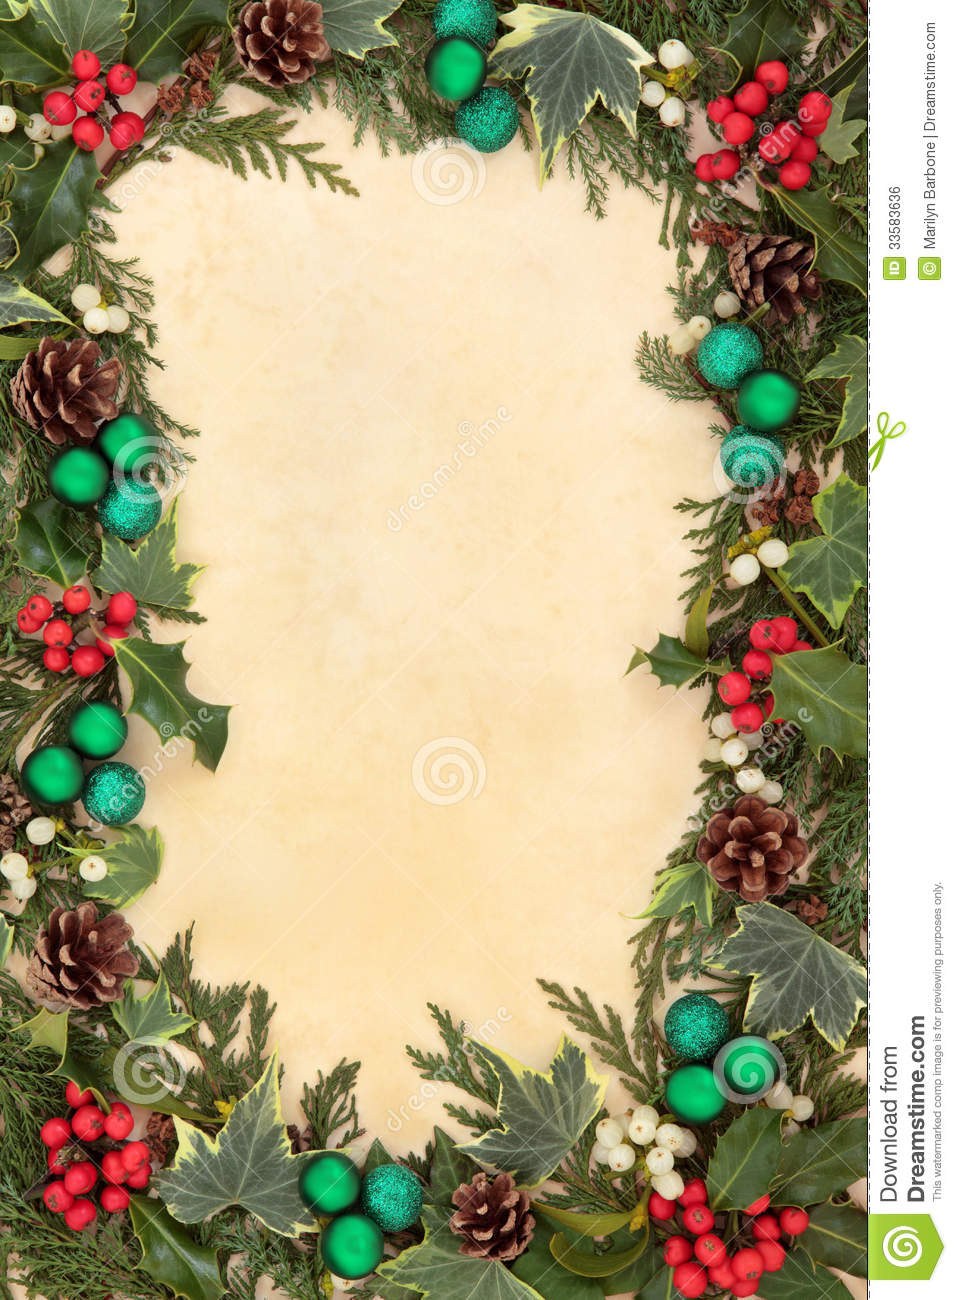 Christmas Flora And Baubles Stock Photo - Image of nature, floral ...